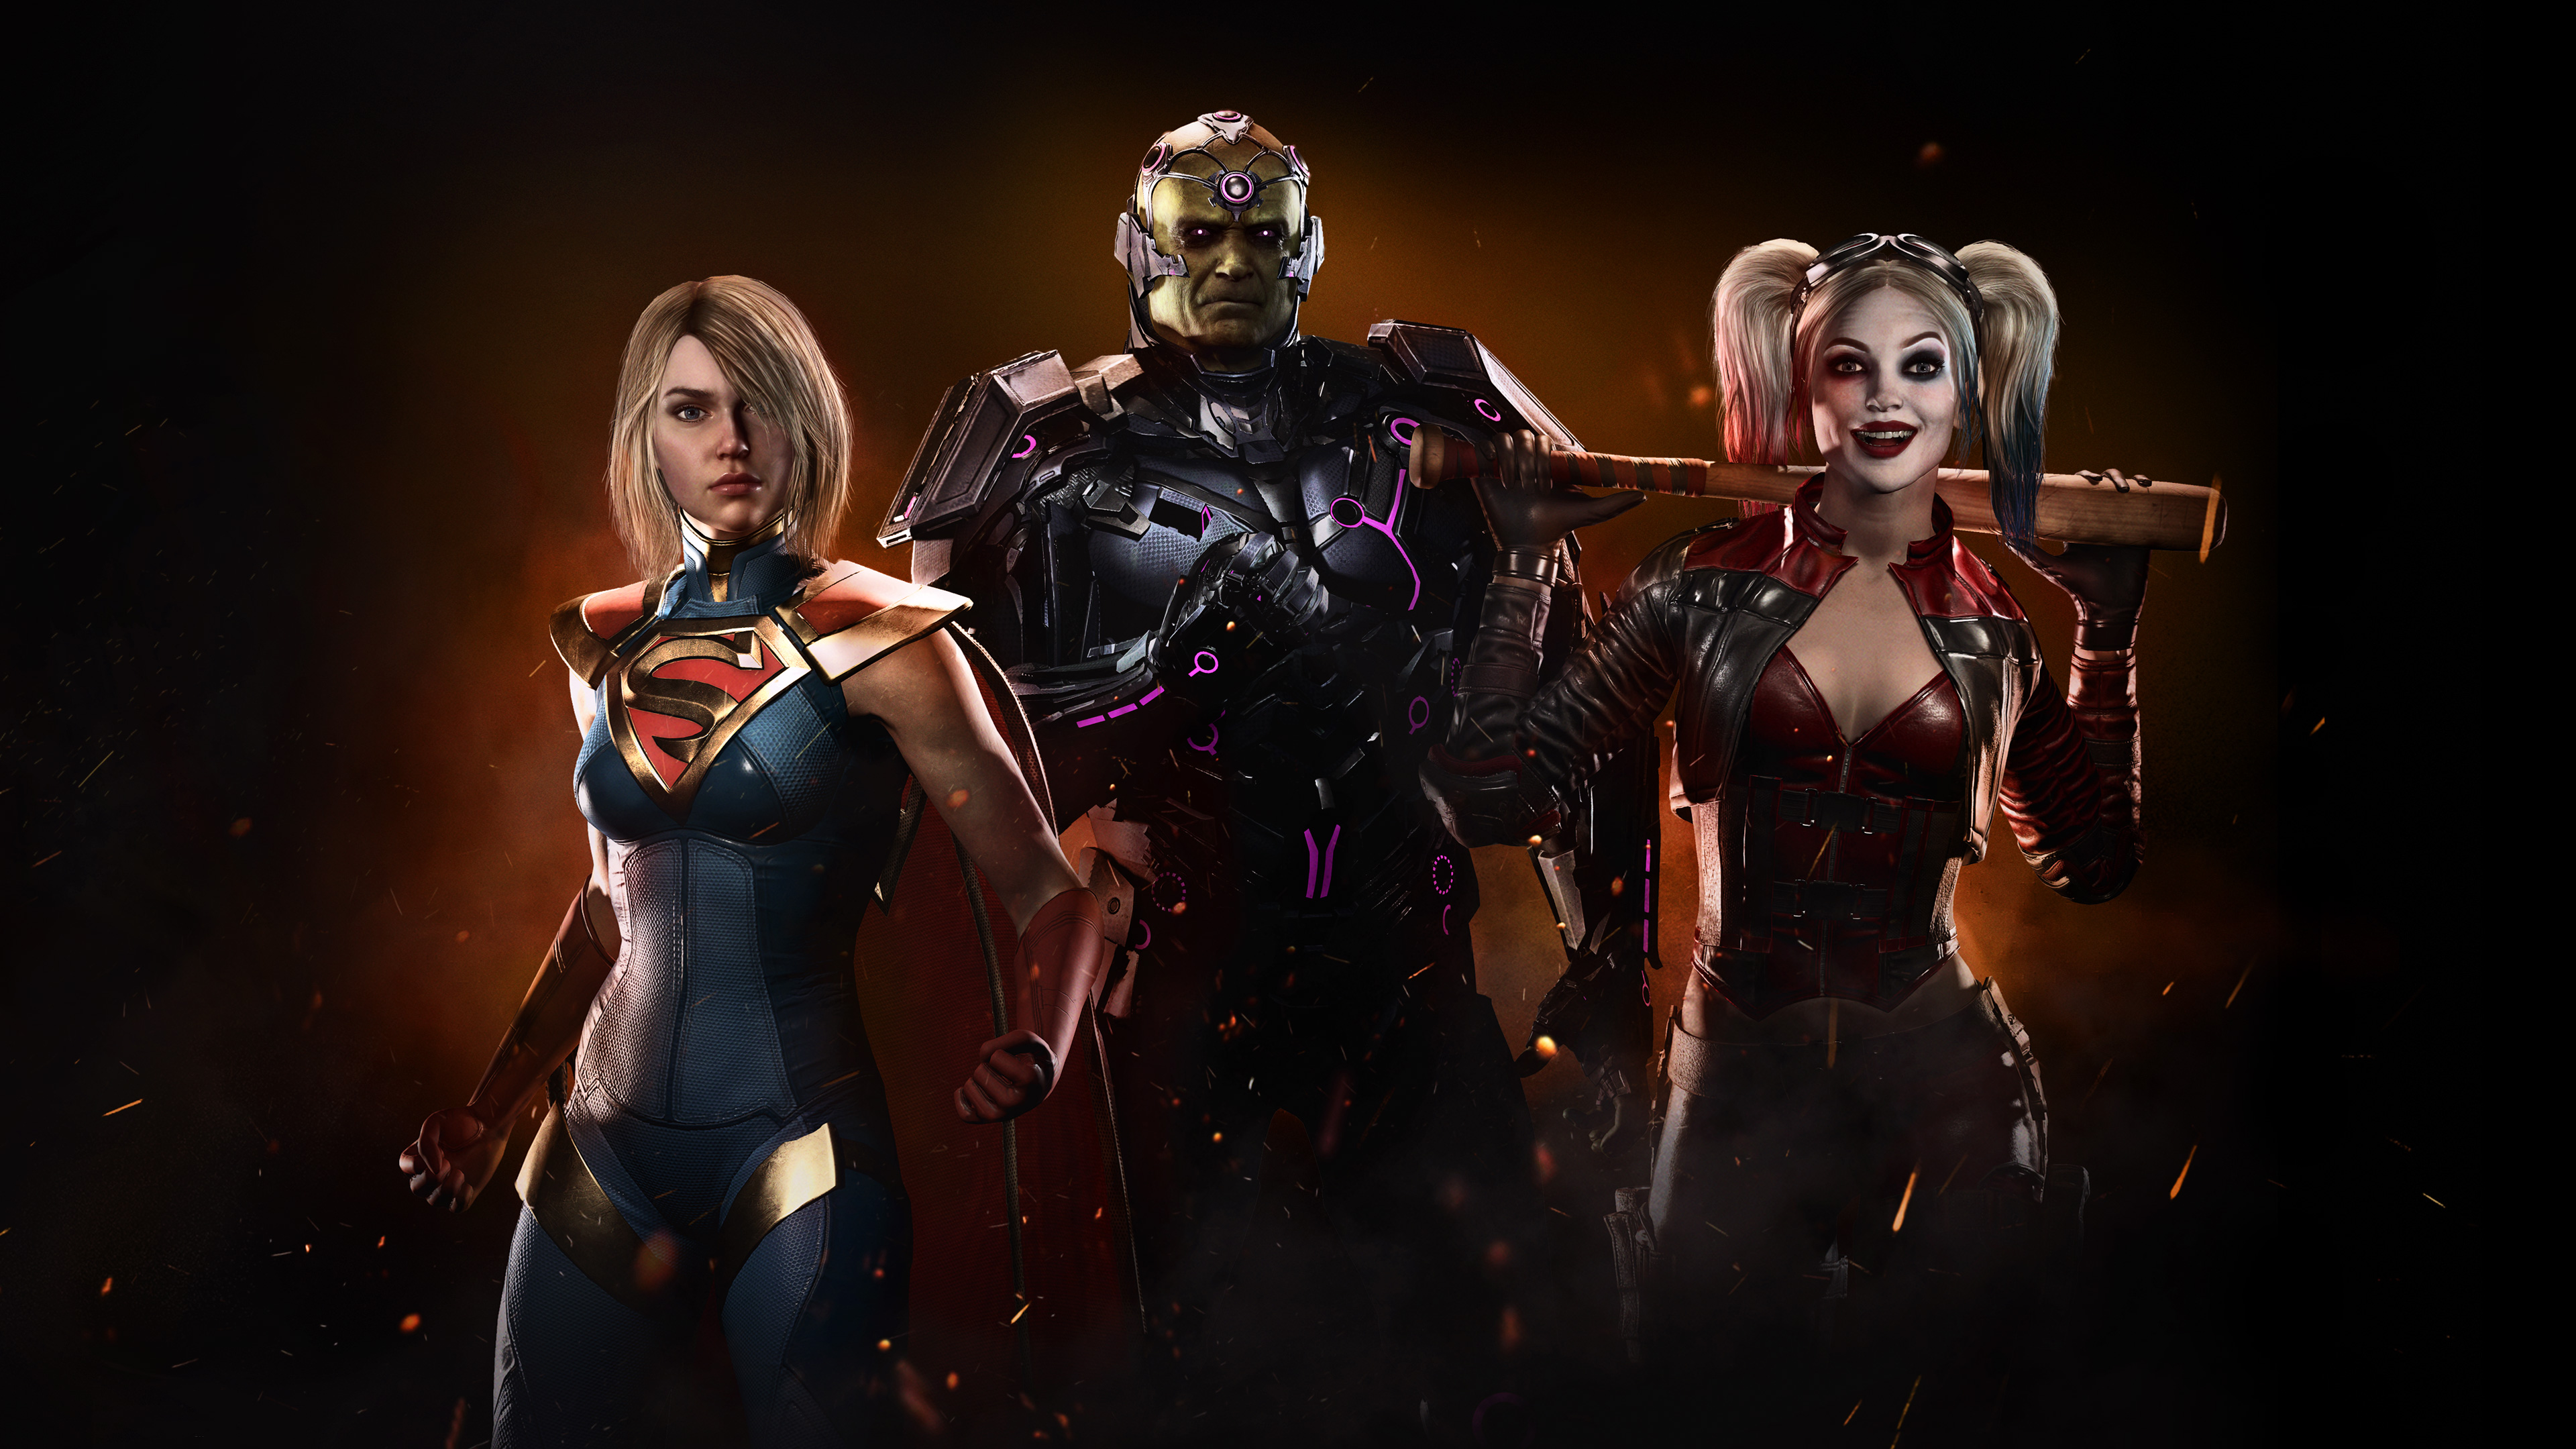 Harley Quinn Injustice 2 Wallpaper: 2560x1440 Injustice 2 Supergirl Harley Quinn 4k 1440P